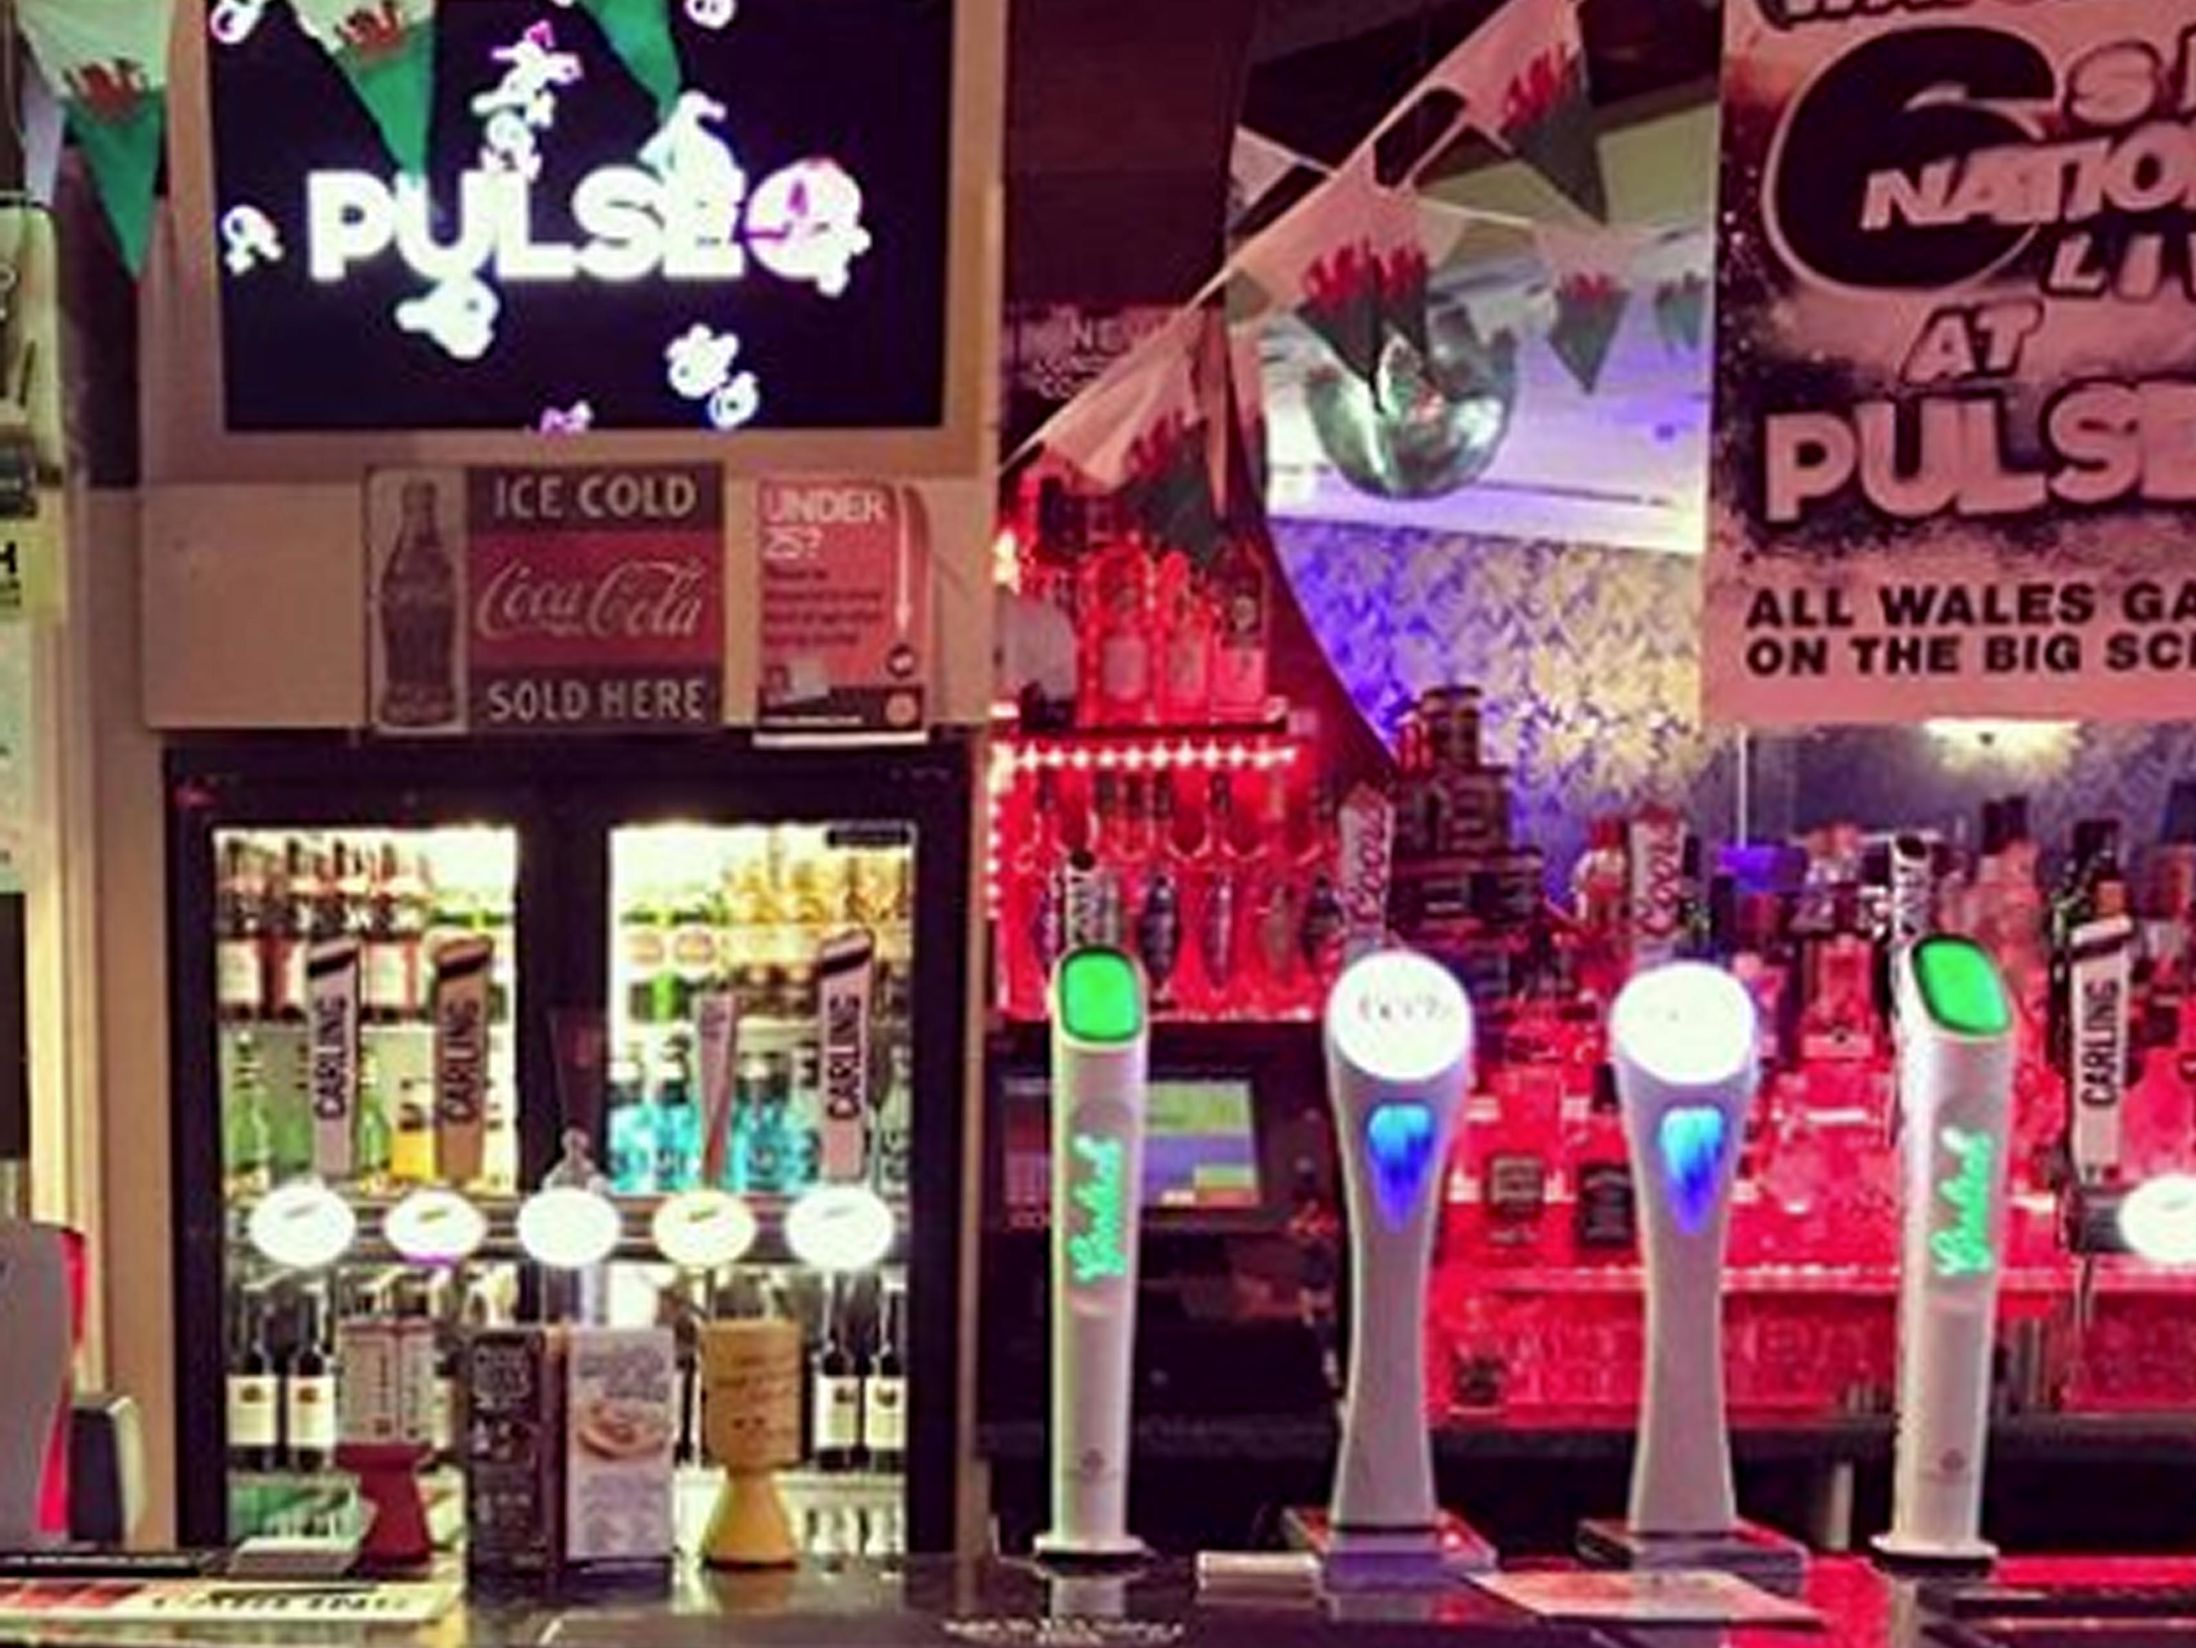 Best Clubs in Cardiff - Pulse